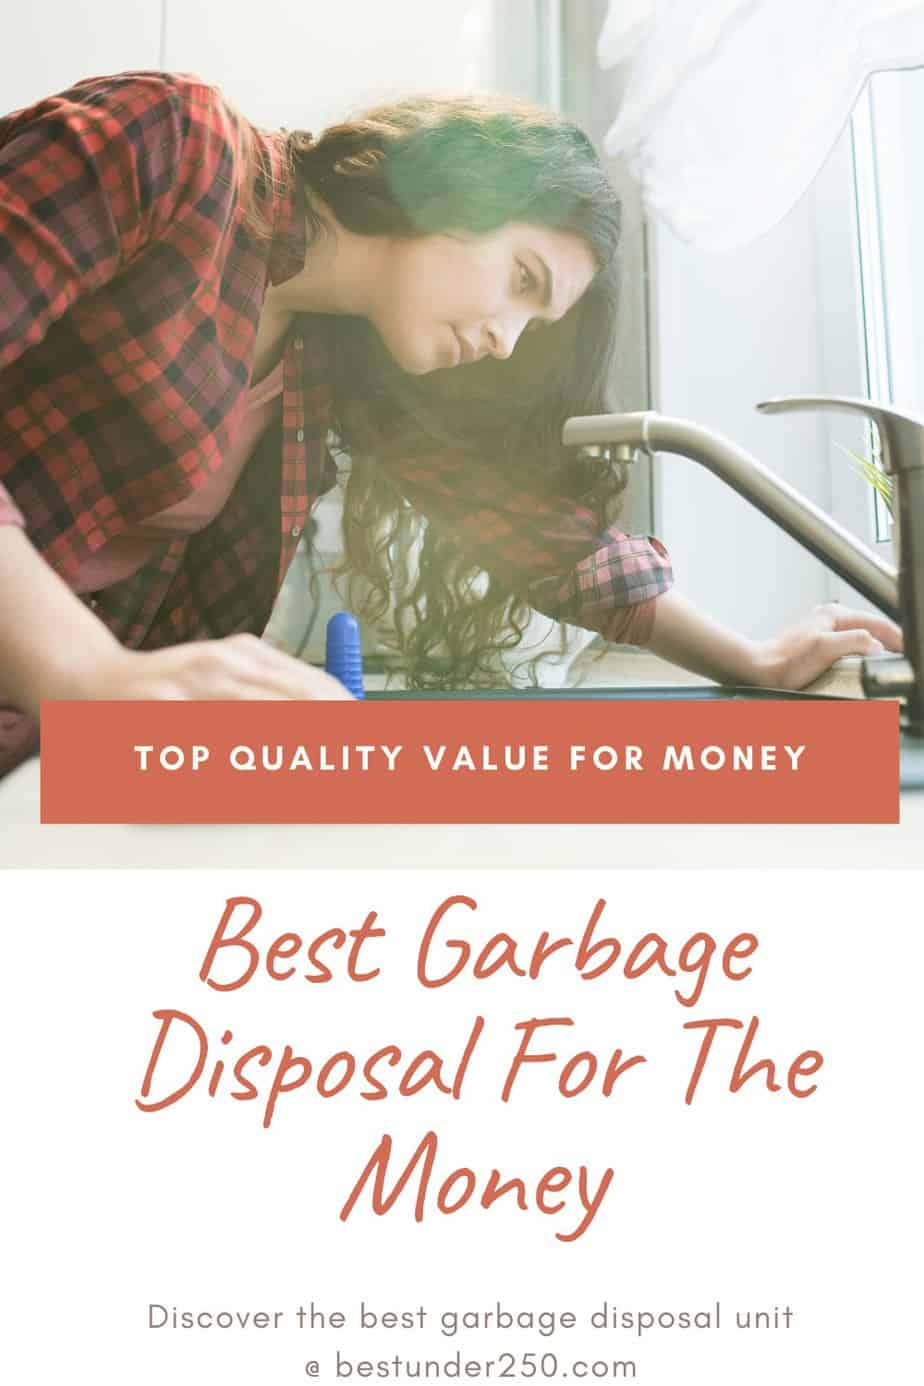 The best garbage disposal for the money